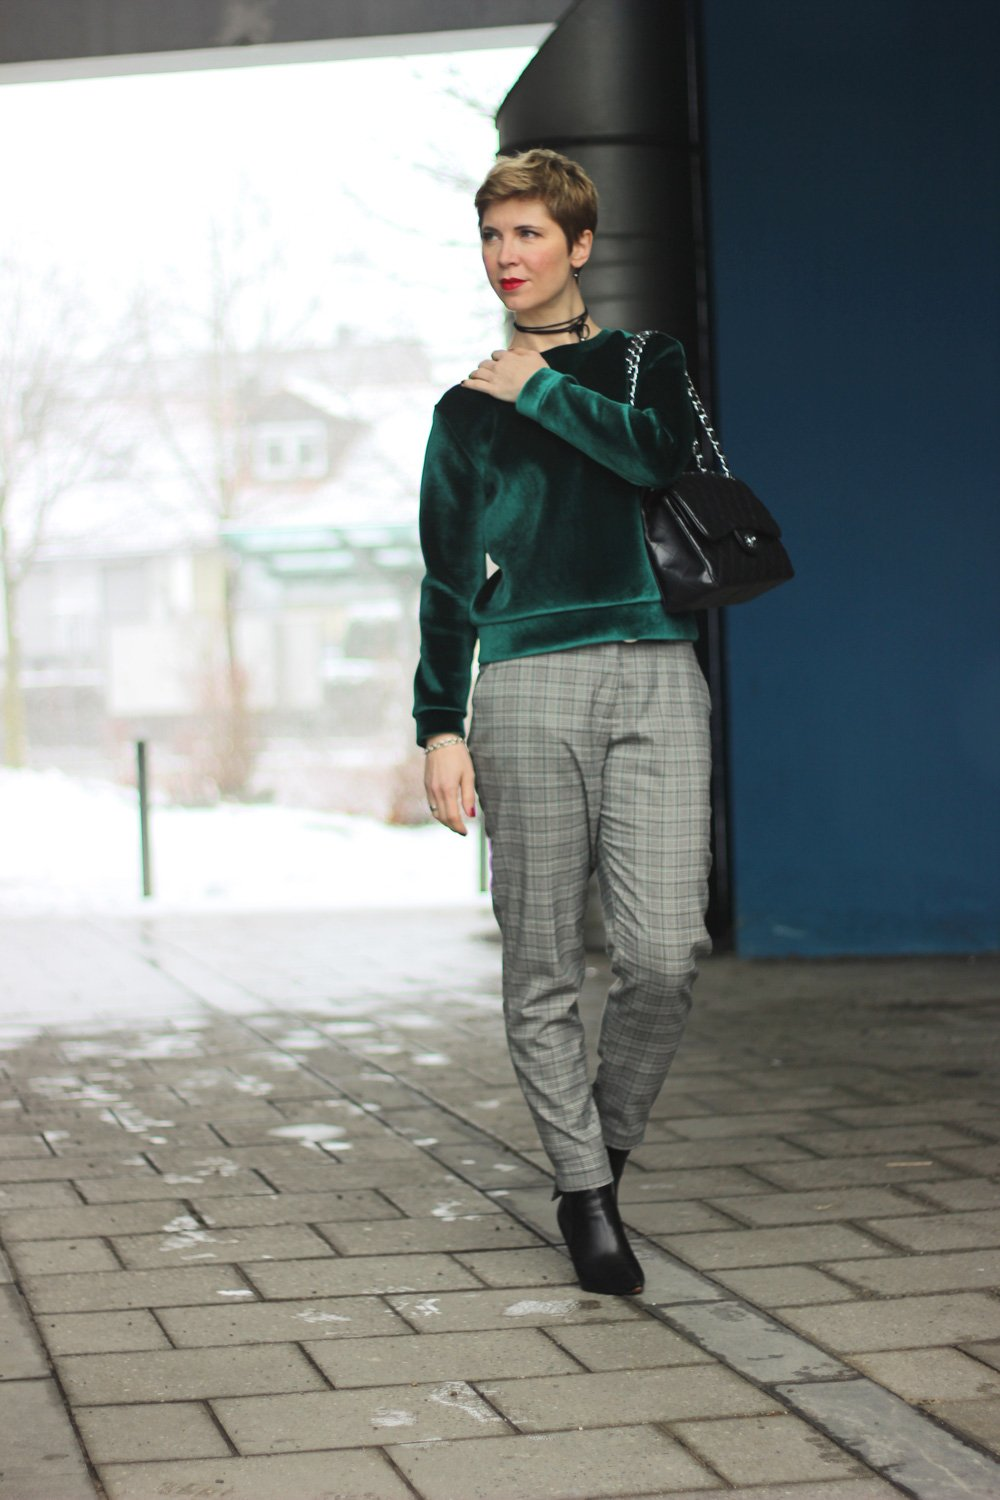 Conny Doll Lifestyle: Samtpullover und Karohose, Lederjacke, Winterlook, casual Styling